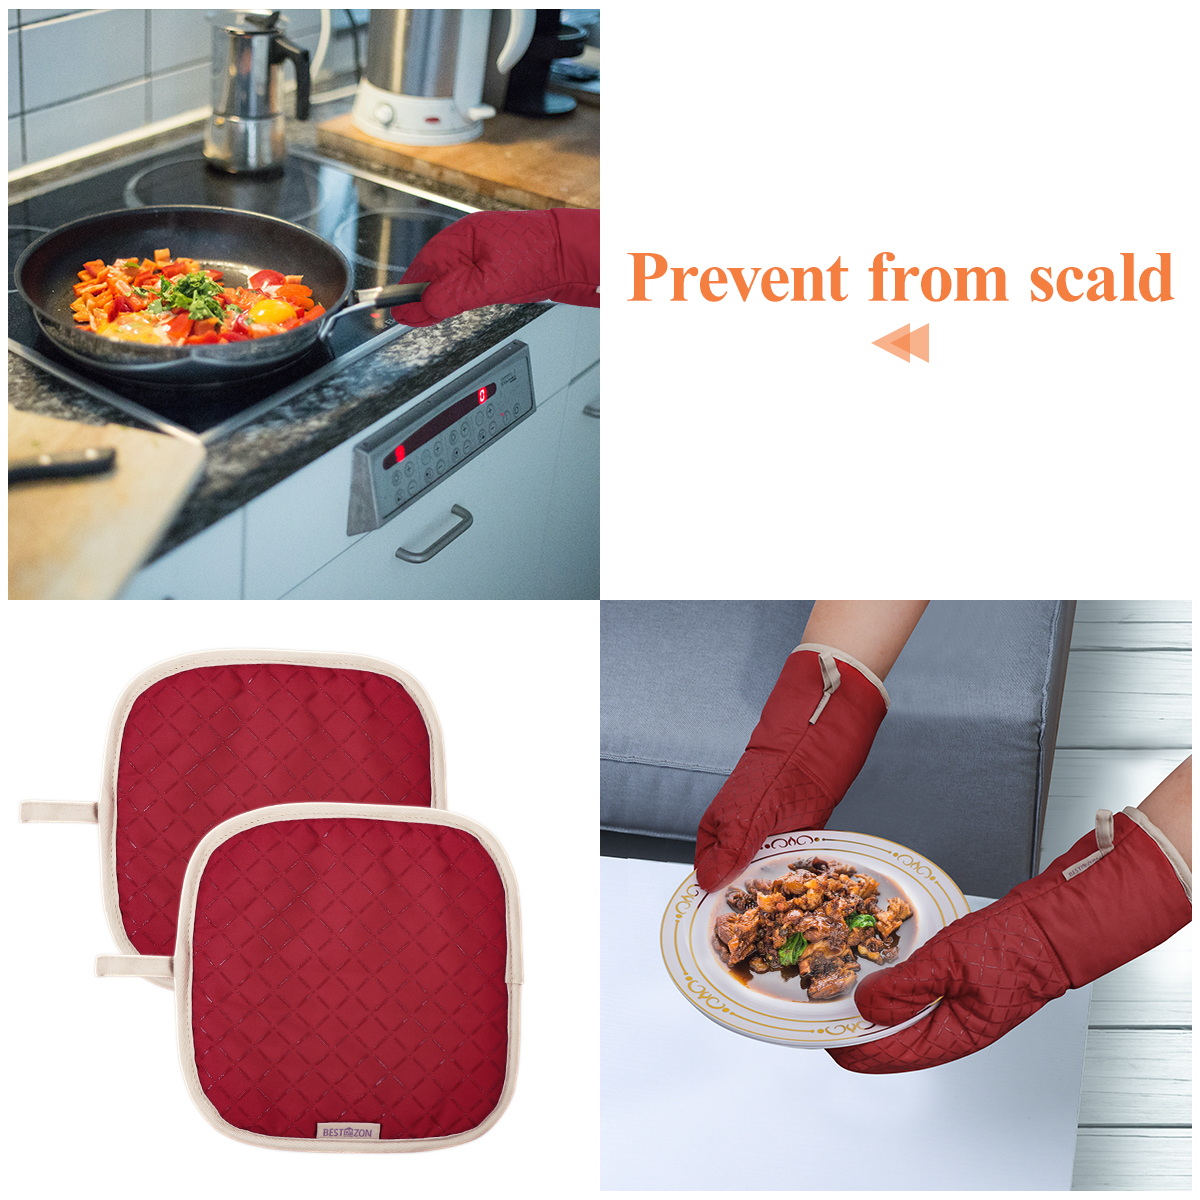 BESTONZON 1 Set Useful Heat Resistant Protective Oven Mitts for Microwave Oven